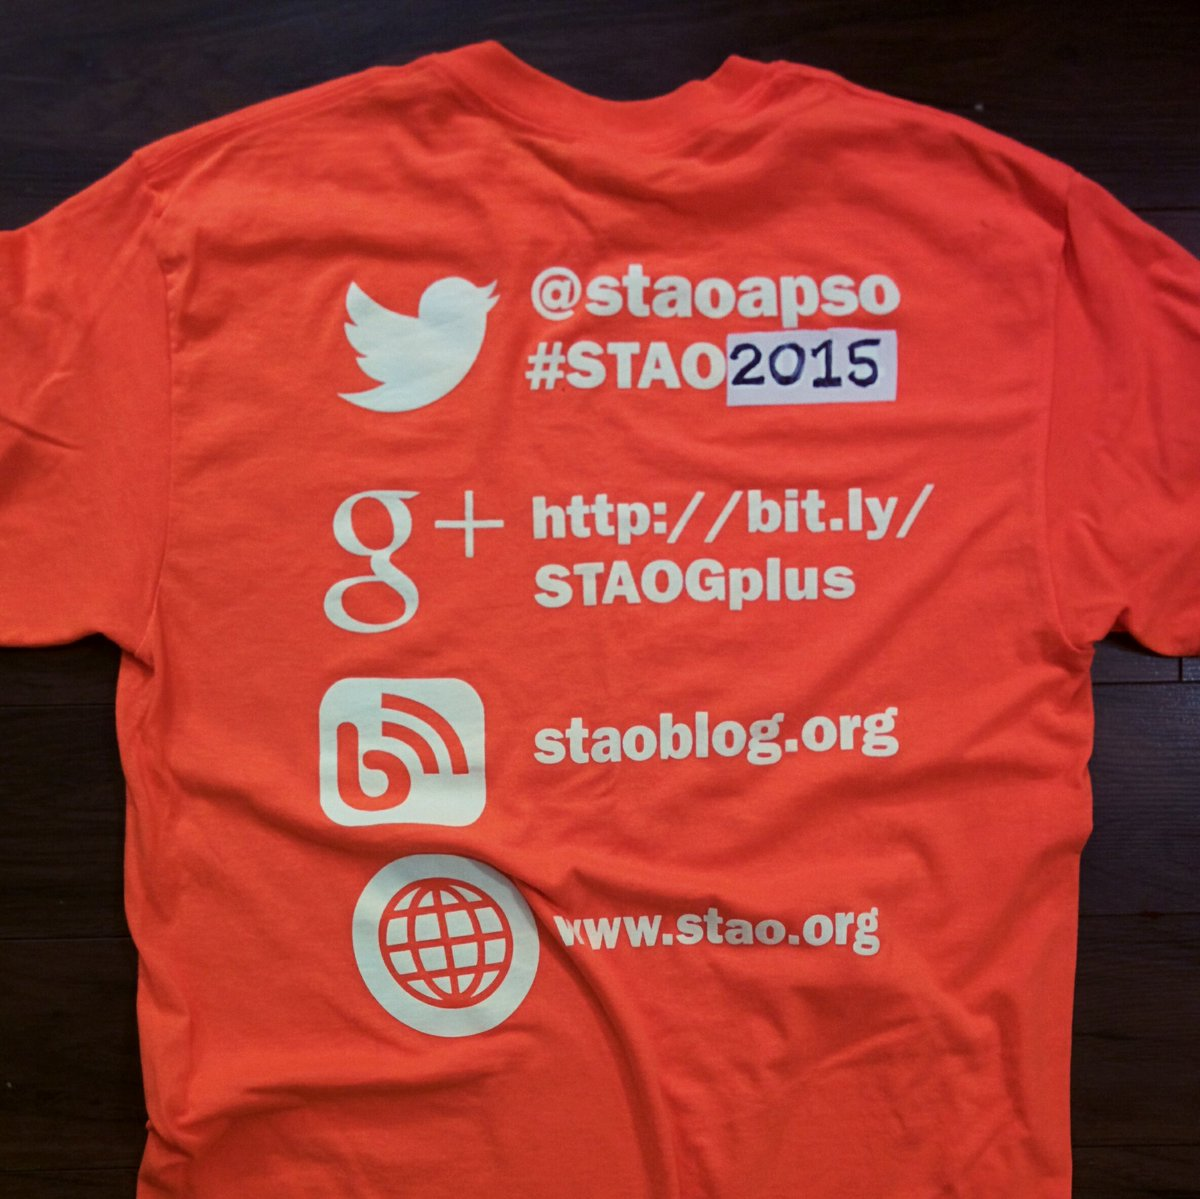 Ready for #stao2015 @staoapso - problem solved @staopres @MahfuzaLRahman @HTheijsmeijer https://t.co/6plqY9cvU8